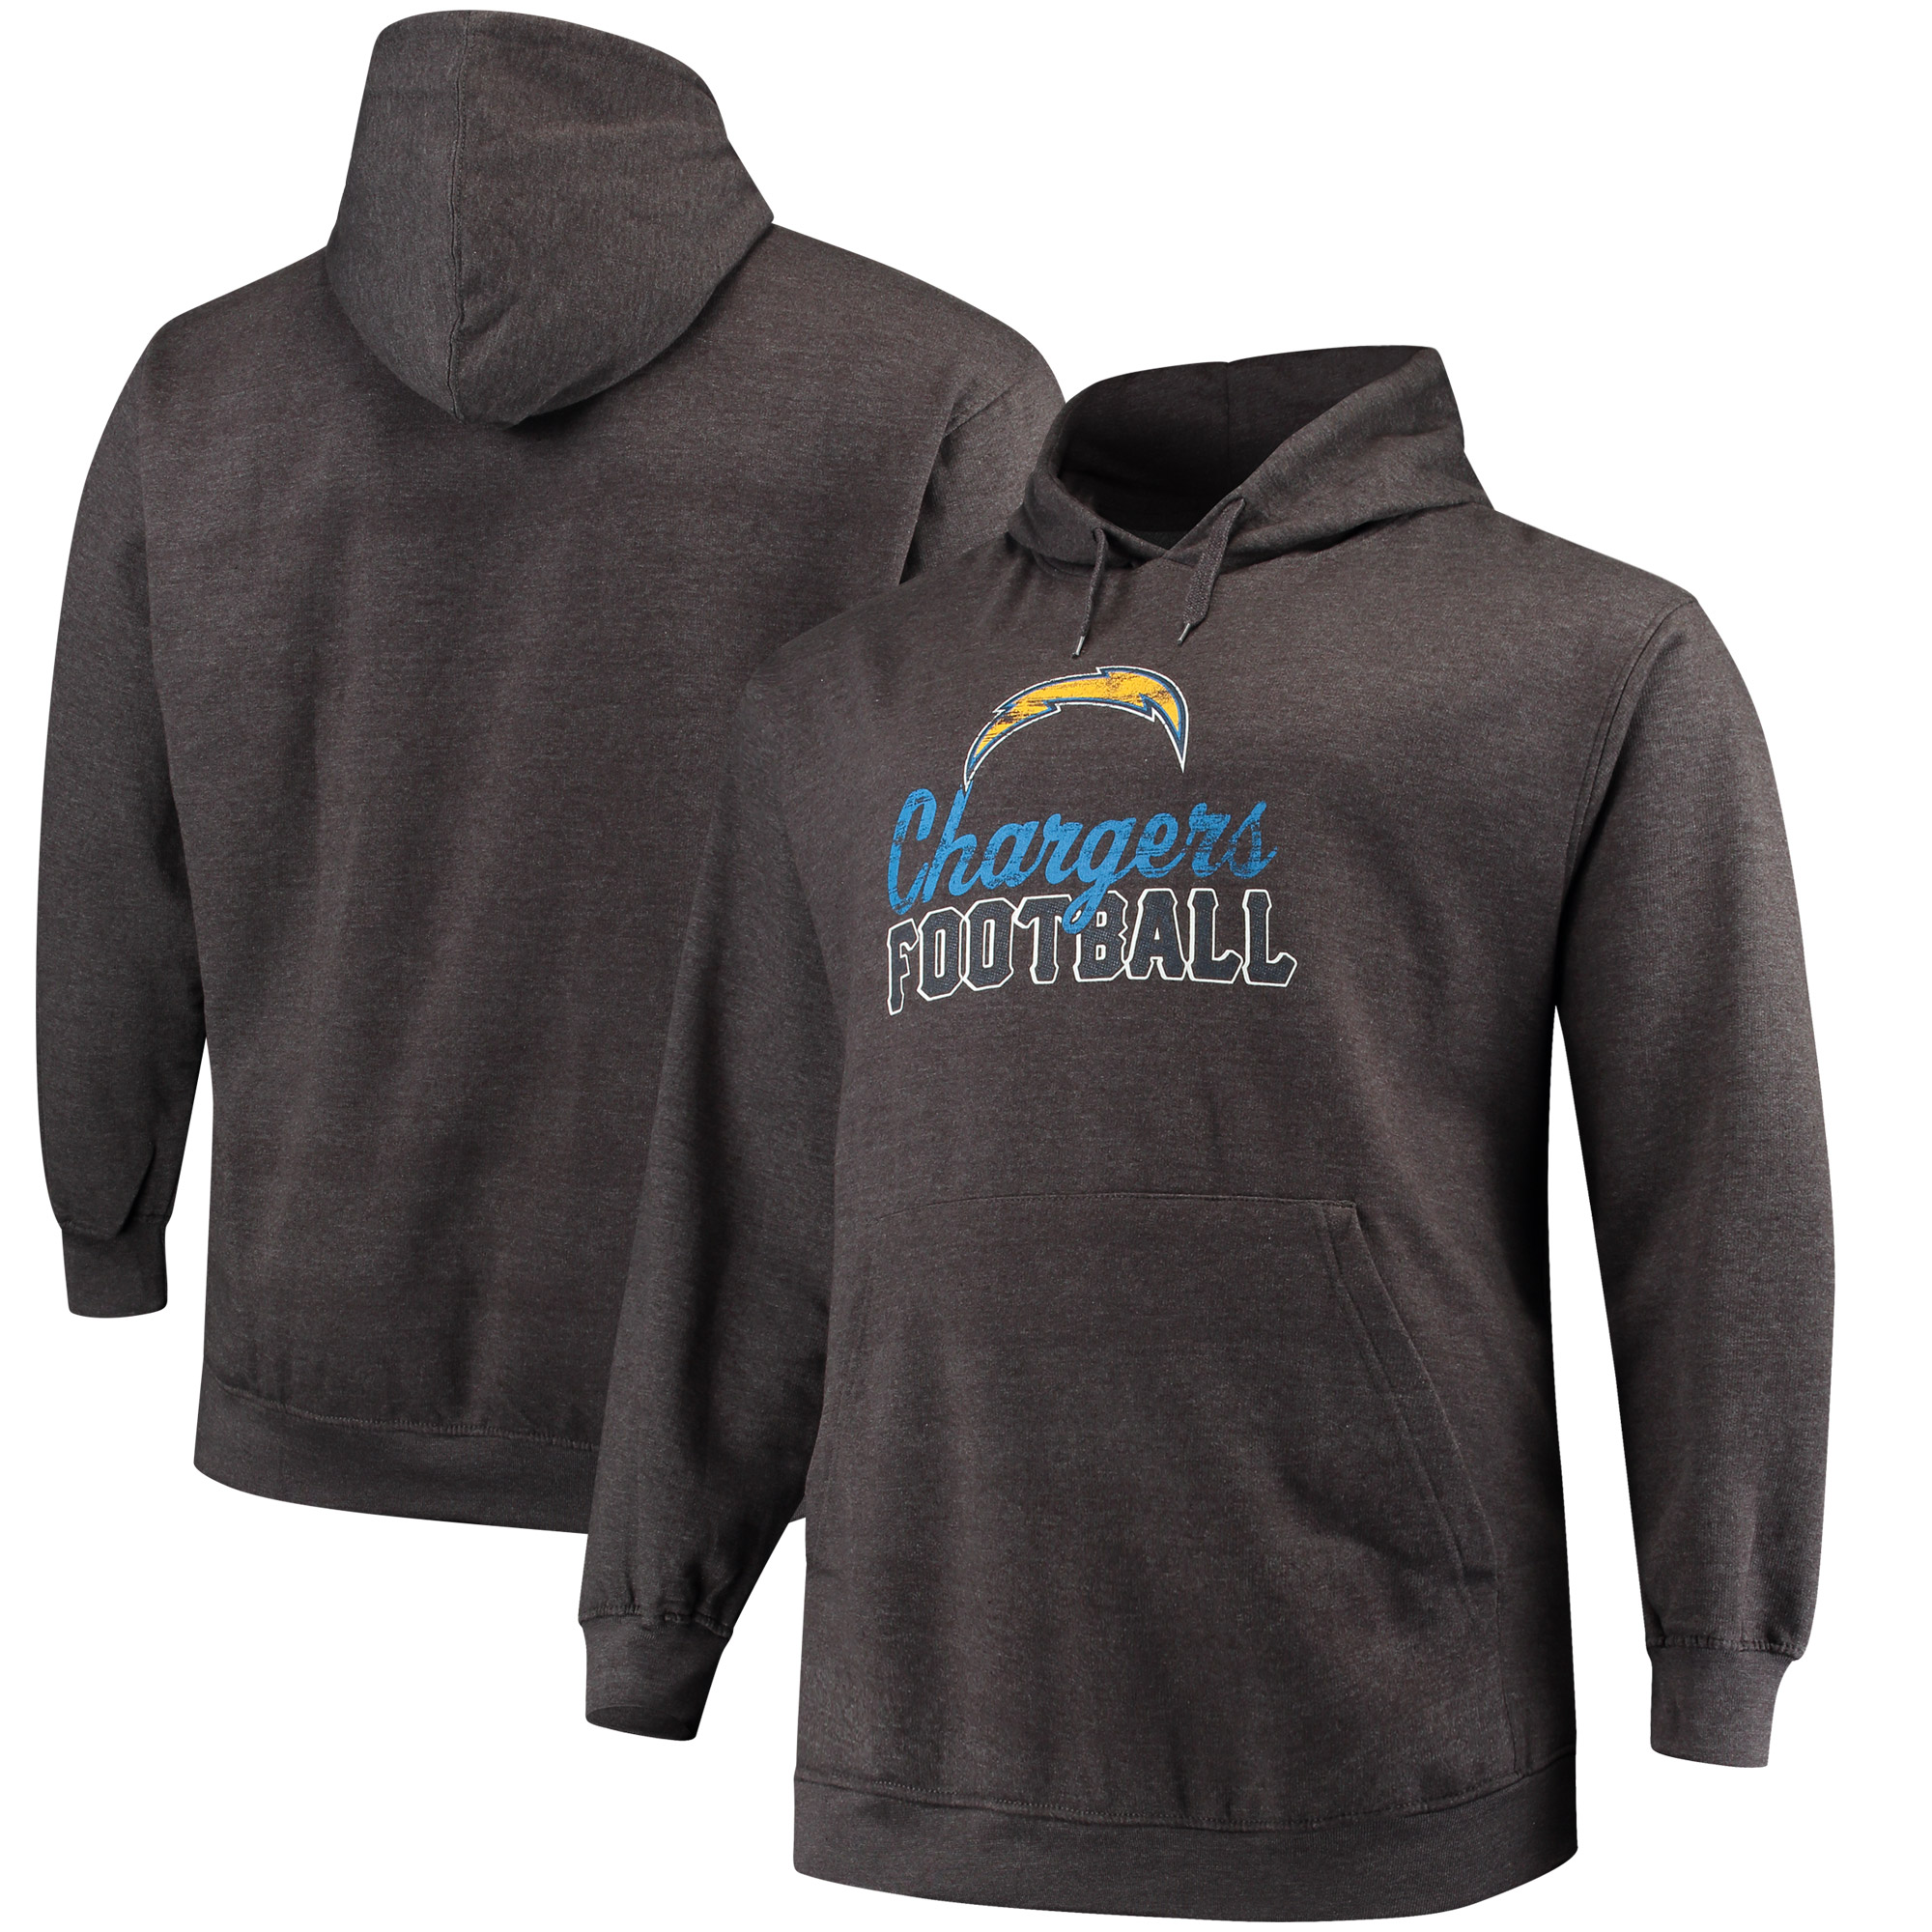 Los Angeles Chargers Majestic Big & Tall Script Kick Return Pullover Hoodie - Charcoal